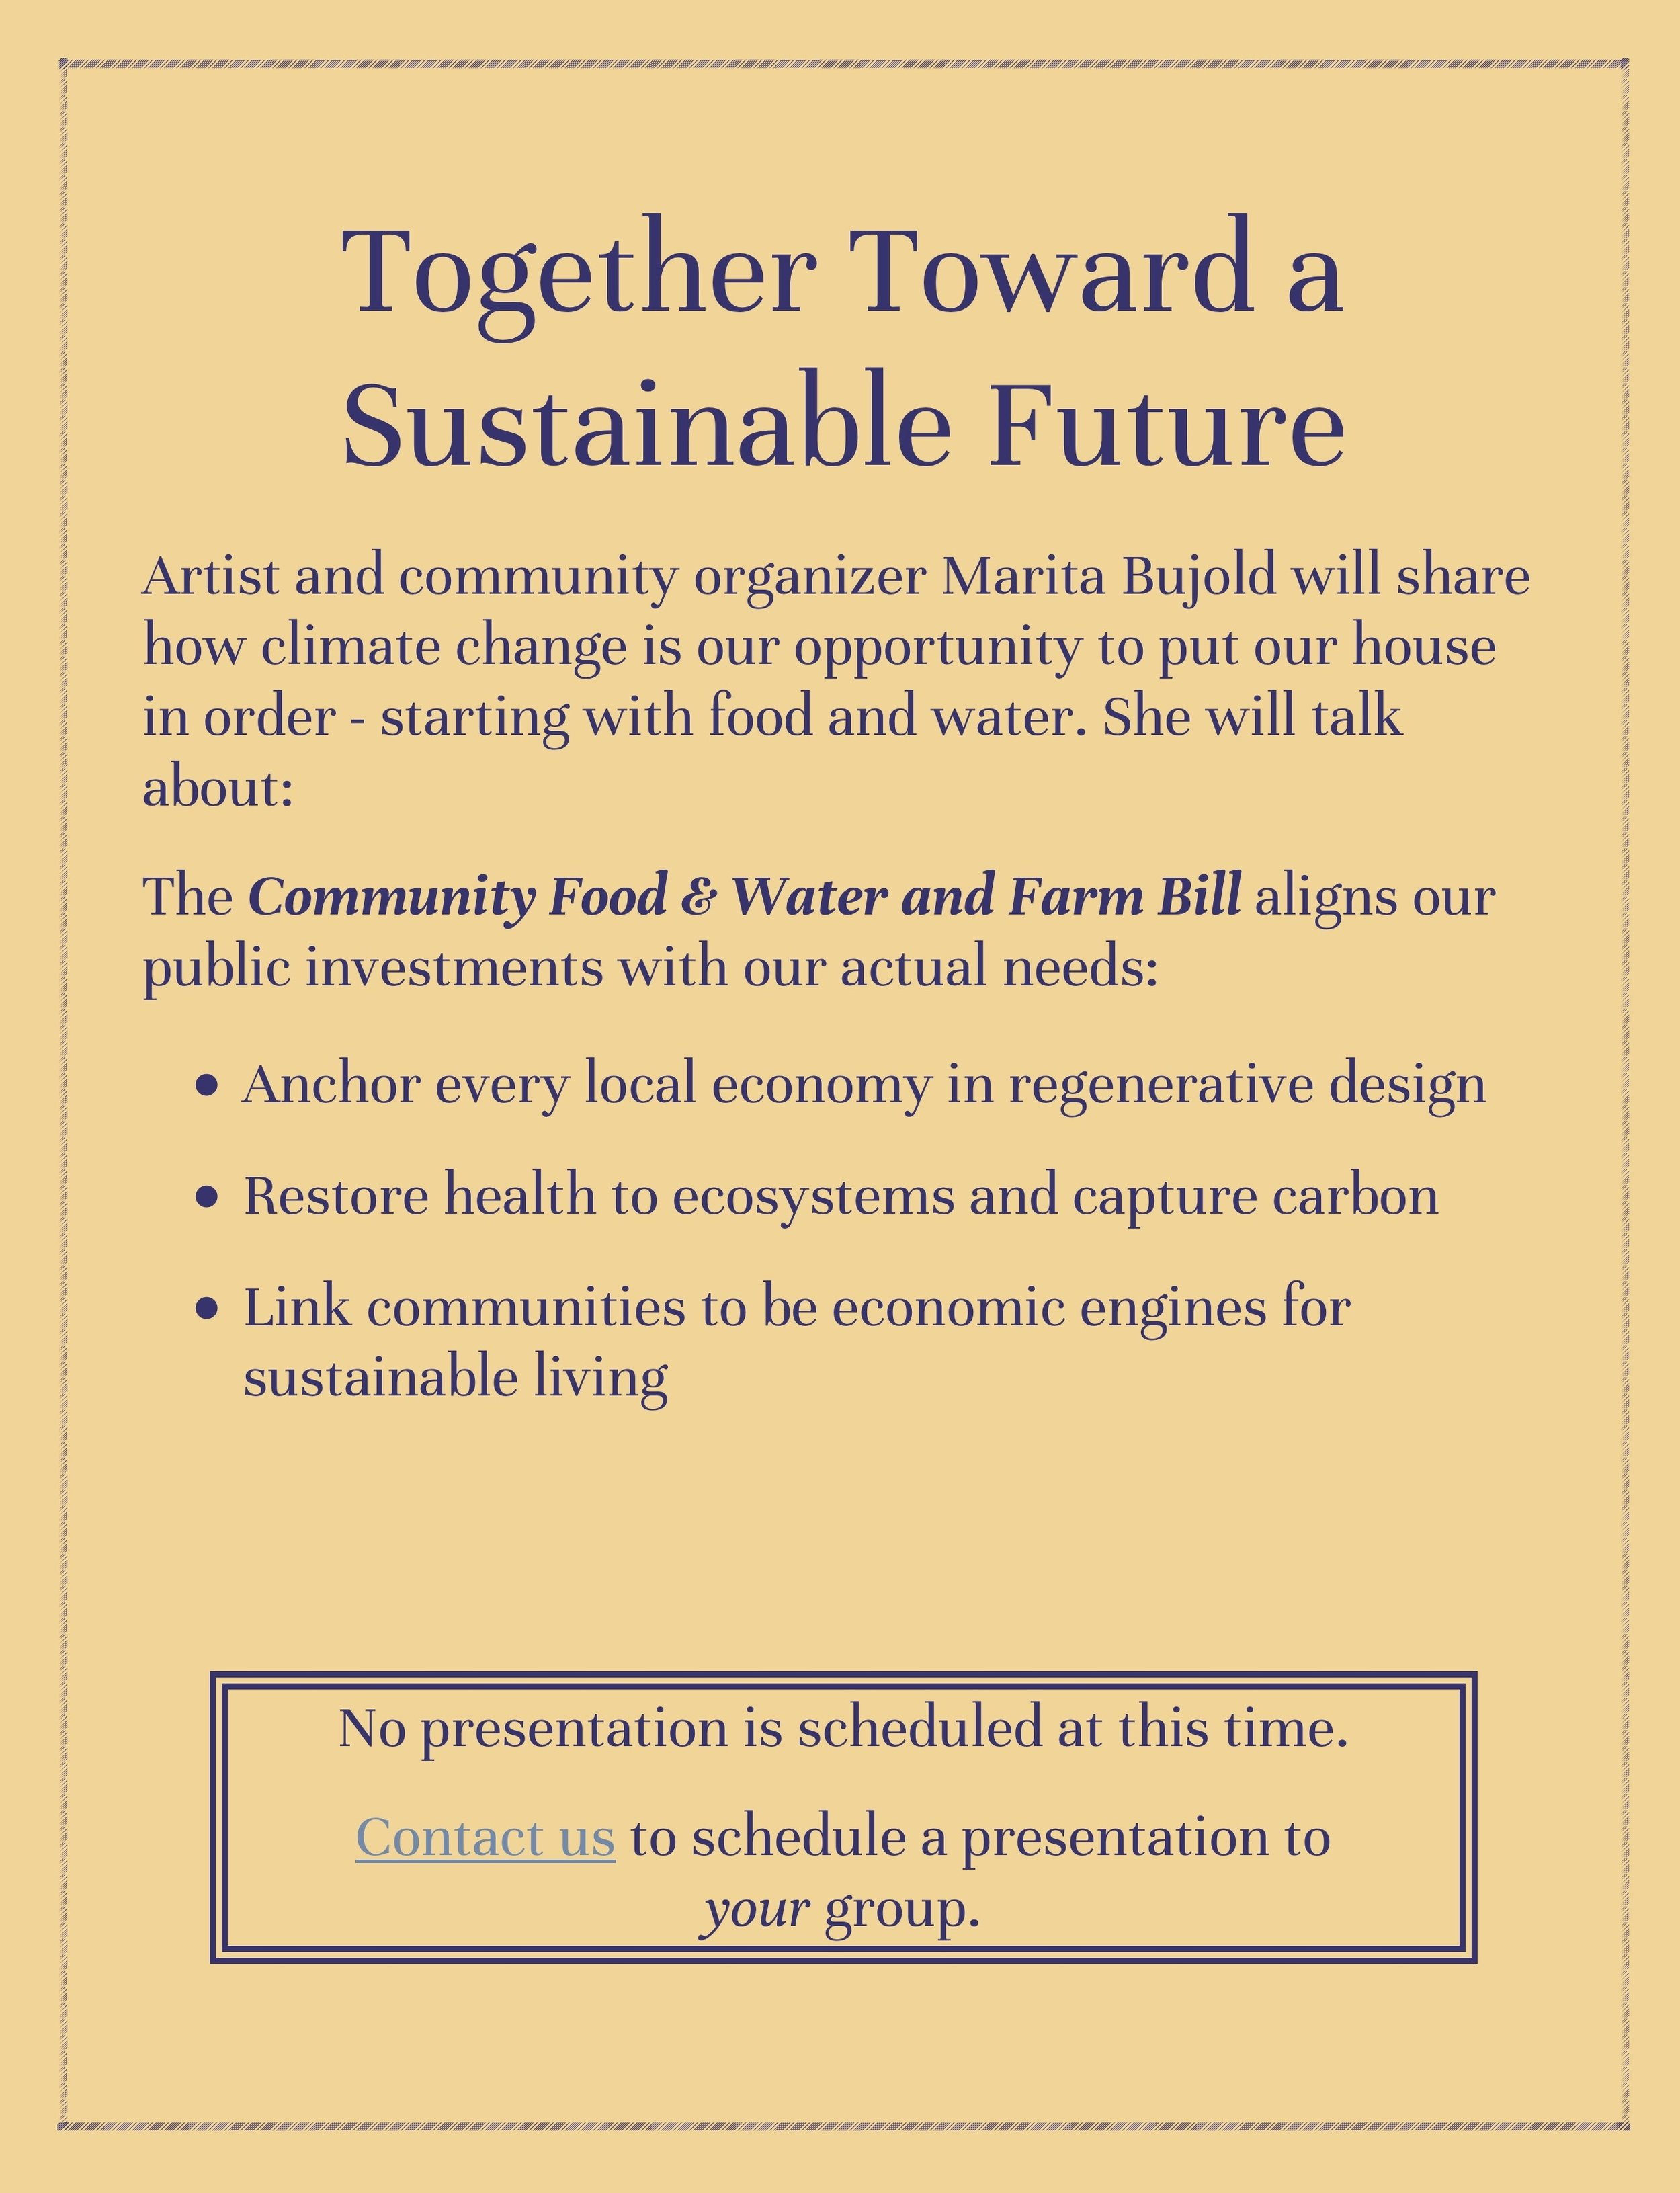 Together Toward a Sustainable Future Presentation Details.jpg